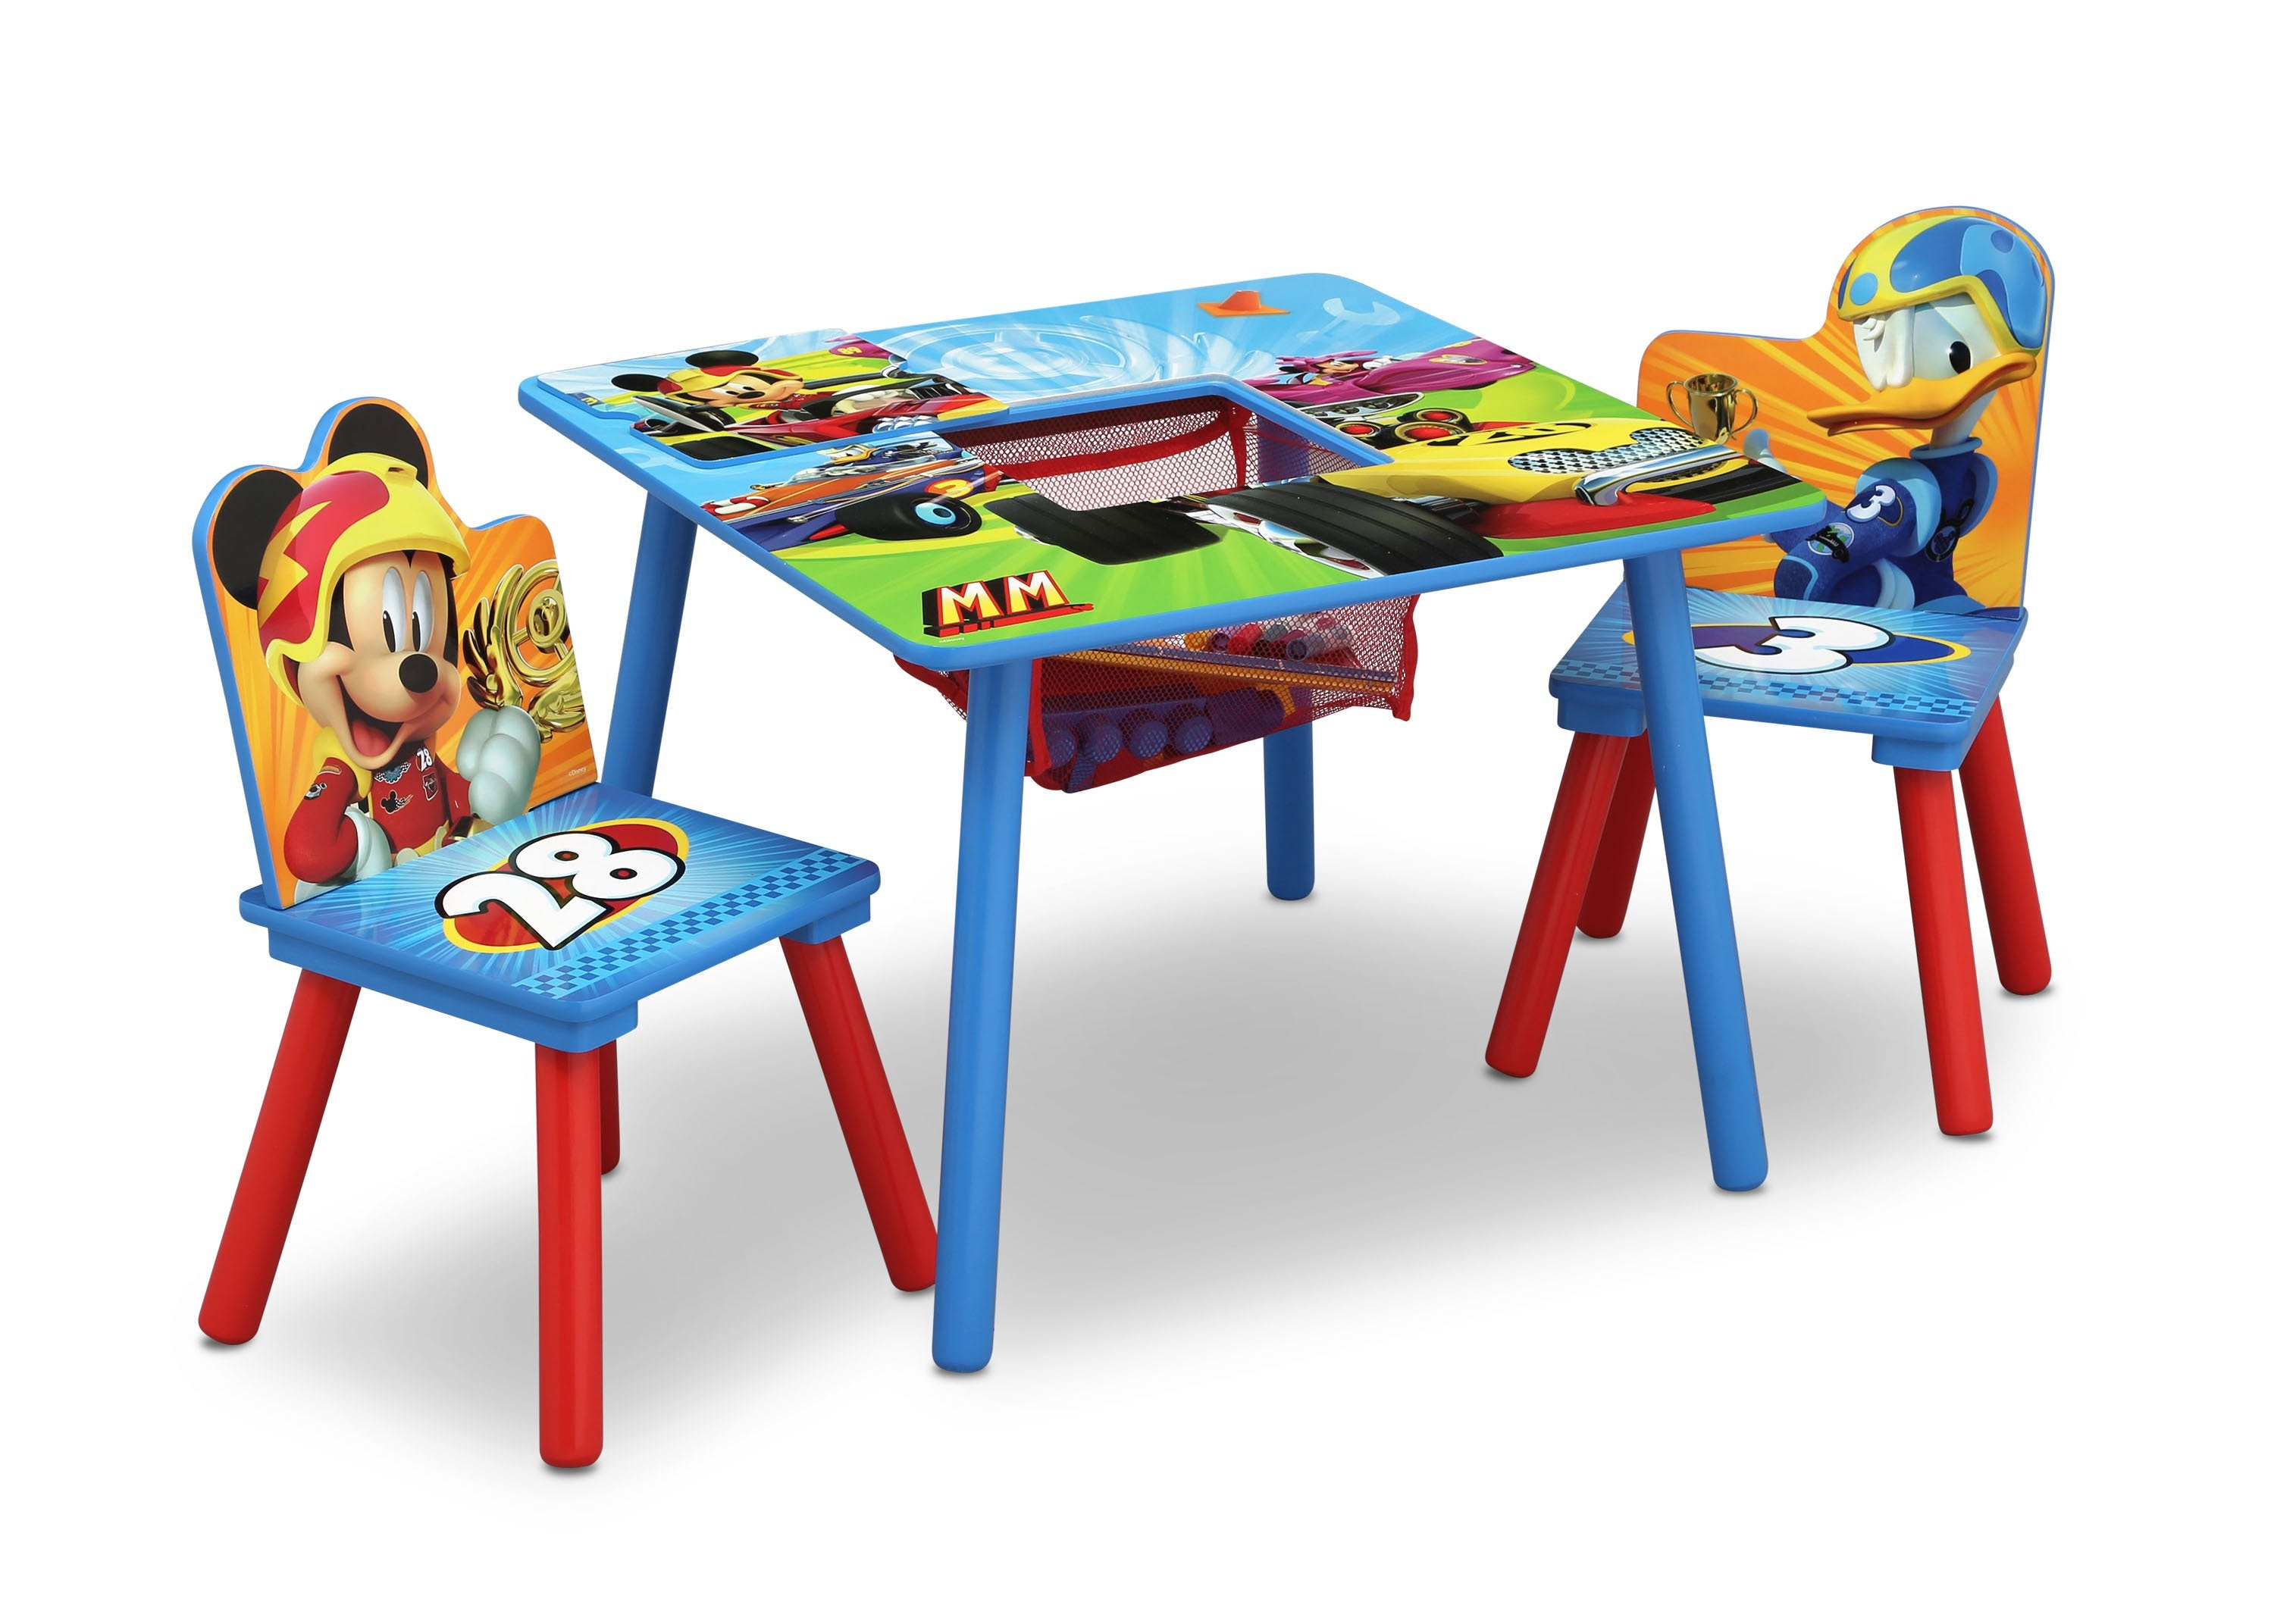 Mickey Mouse Table & Chair Set with Storage | Delta Children